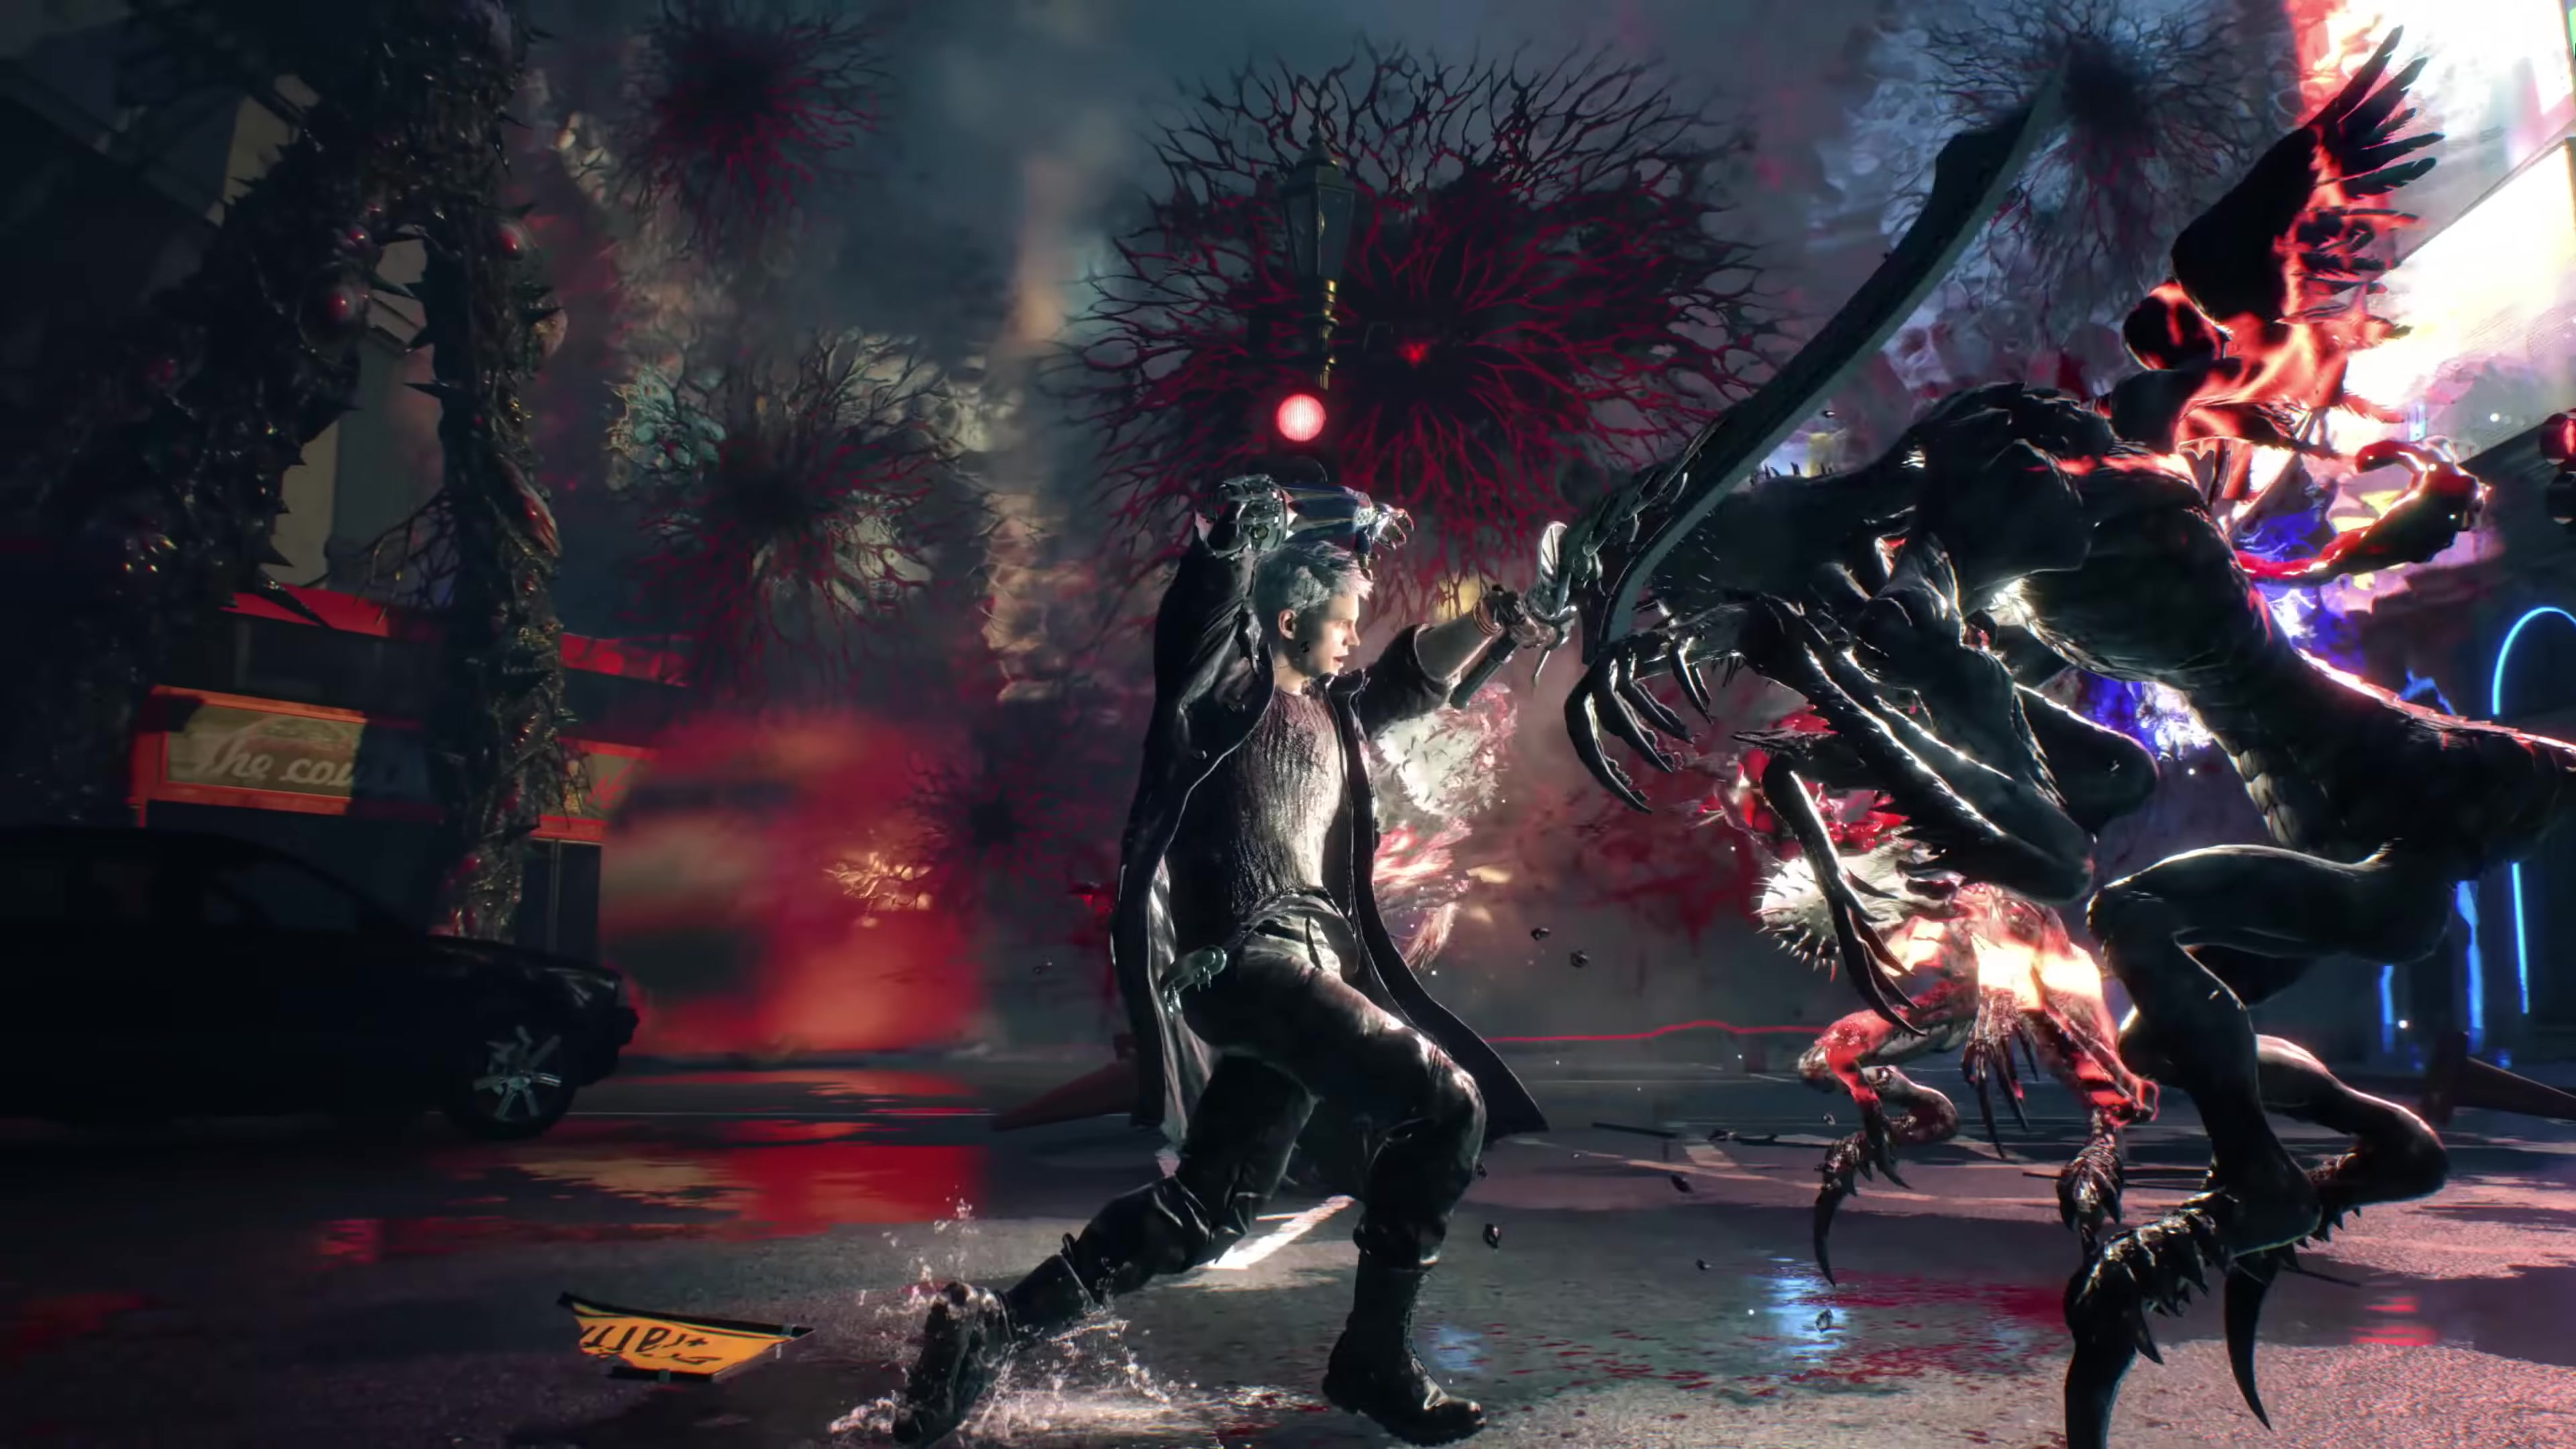 Devil May Cry 5 079.jpg - Devil May Cry 5